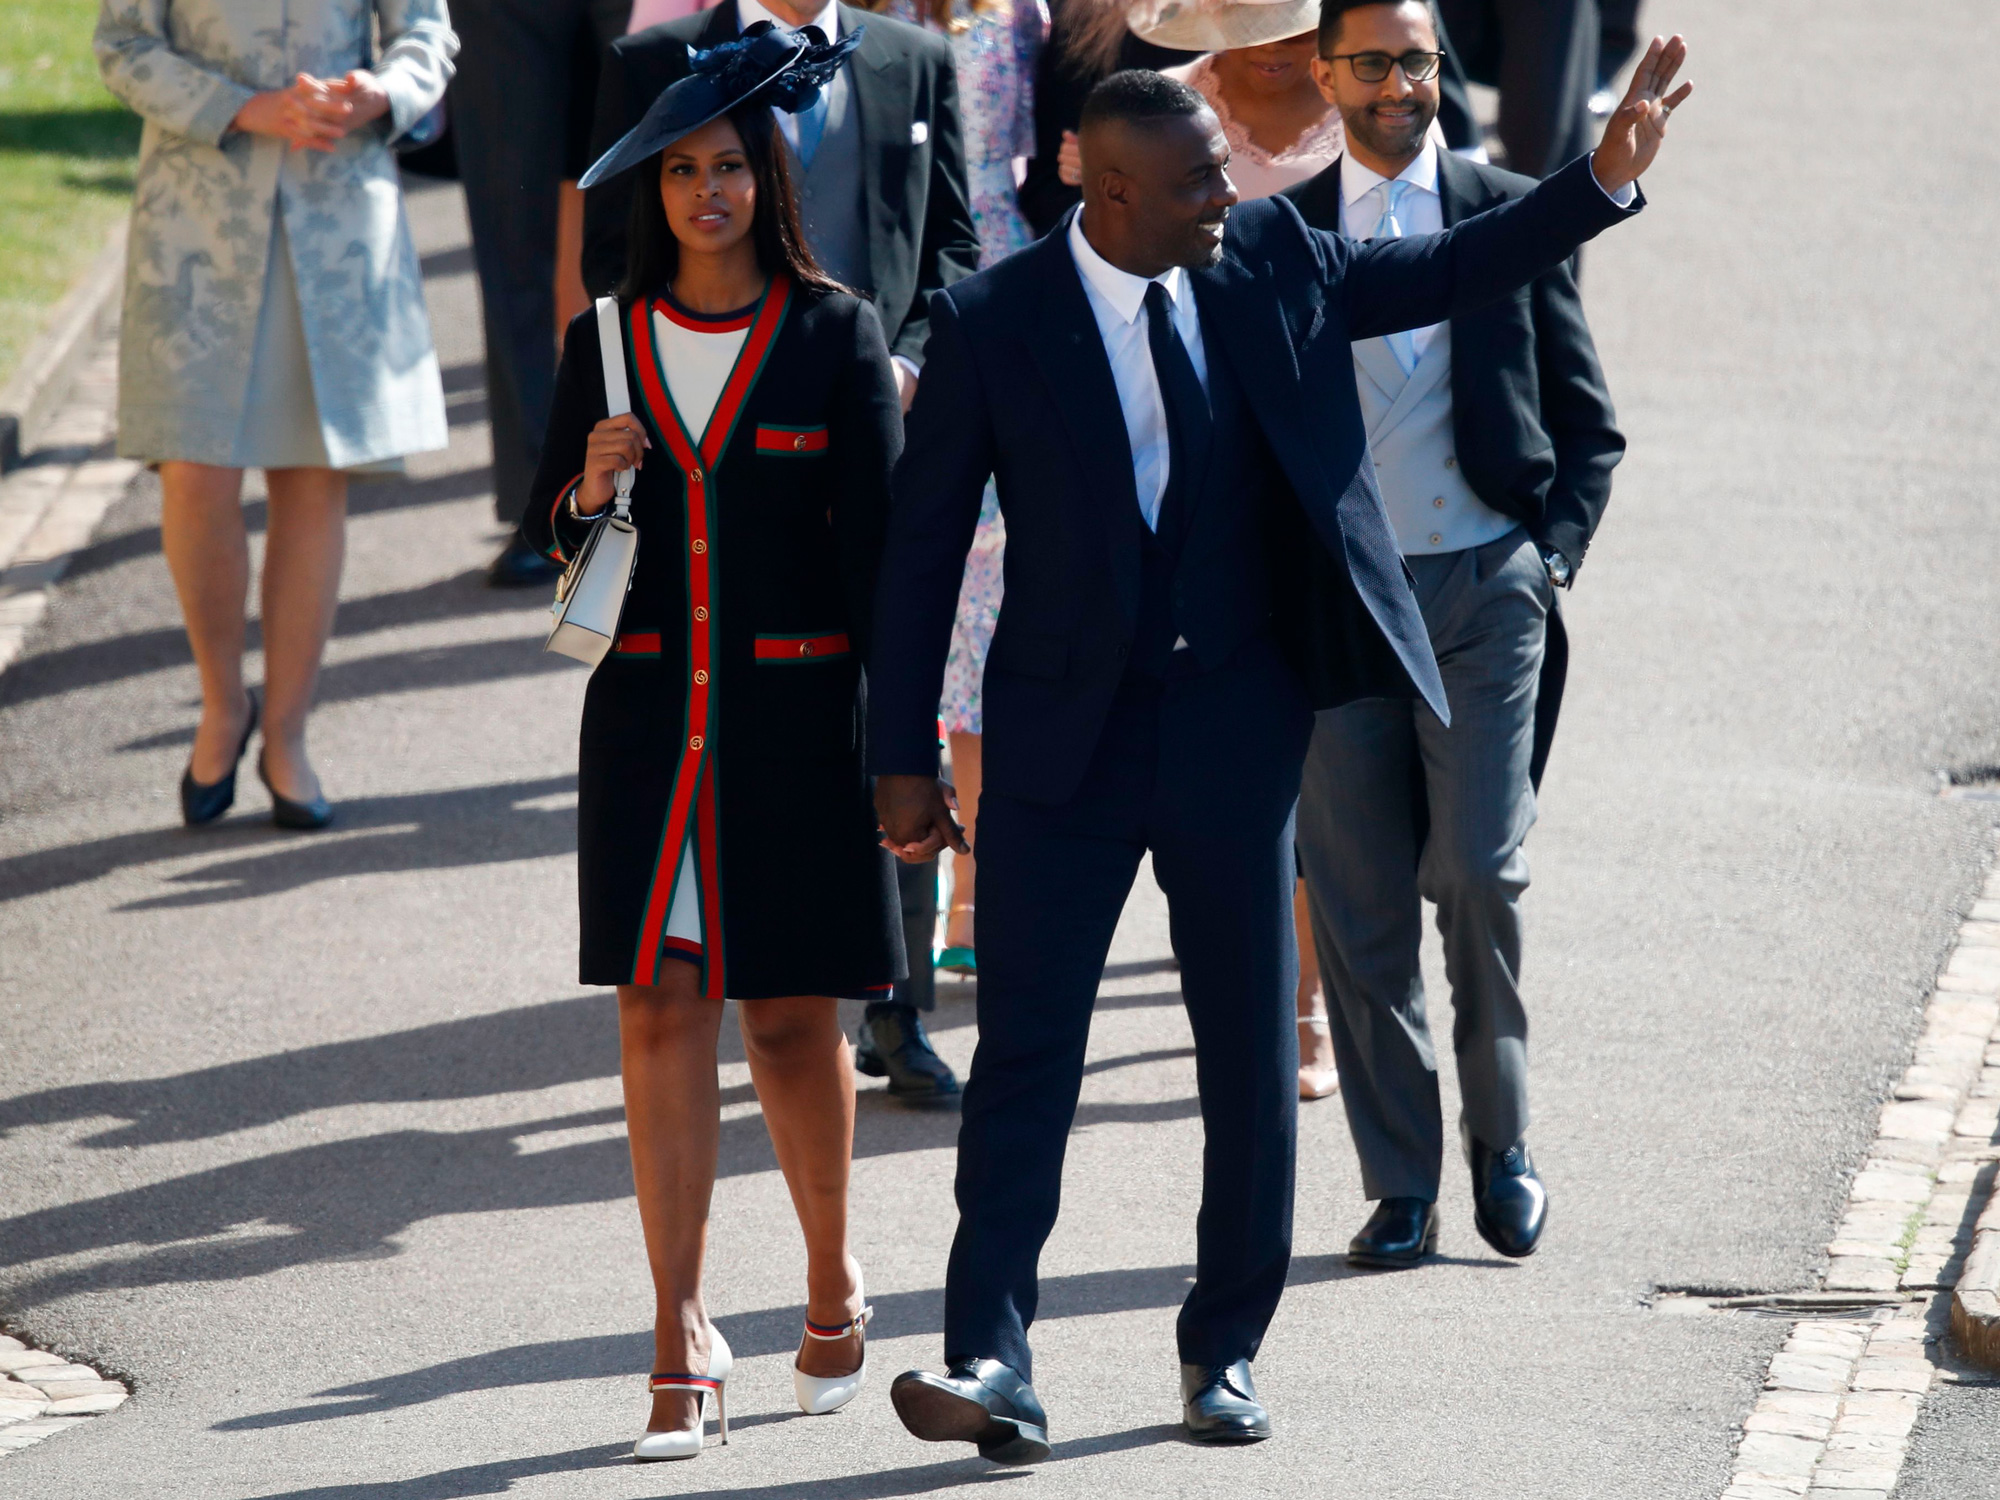 f9fc12713b42c British actor Idris Elba (R) arrives with his fiancee Sabrina Dhowre (L)  for the wedding ceremony of Britain s Prince Harry